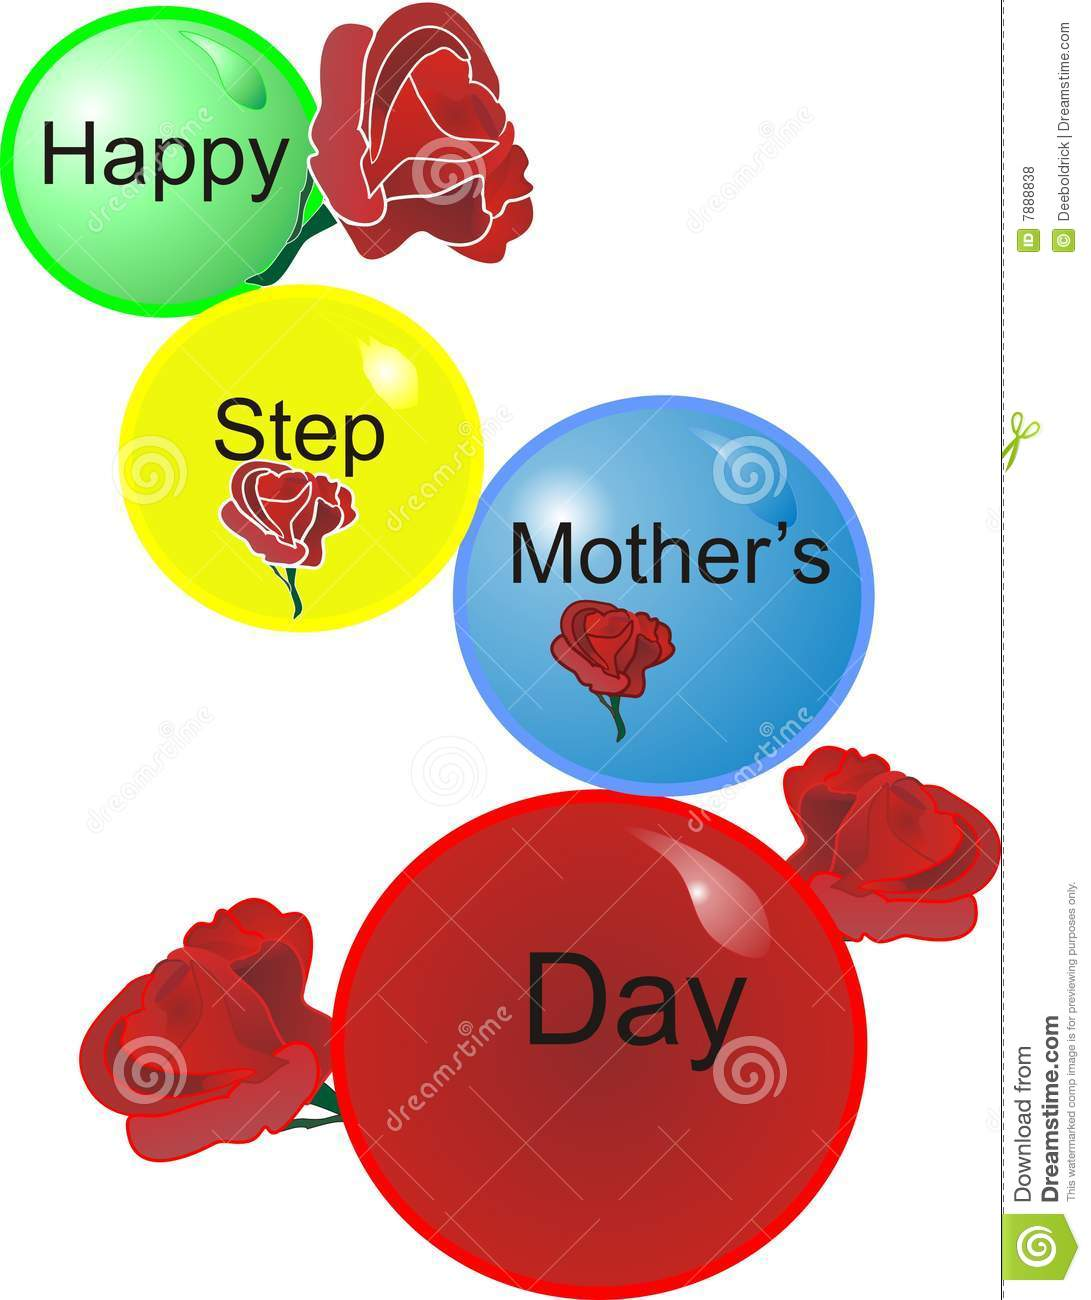 Happy Step Mother Day Stock Illustrations 65 Happy Step Mother Day Stock Illustrations Vectors Clipart Dreamstime